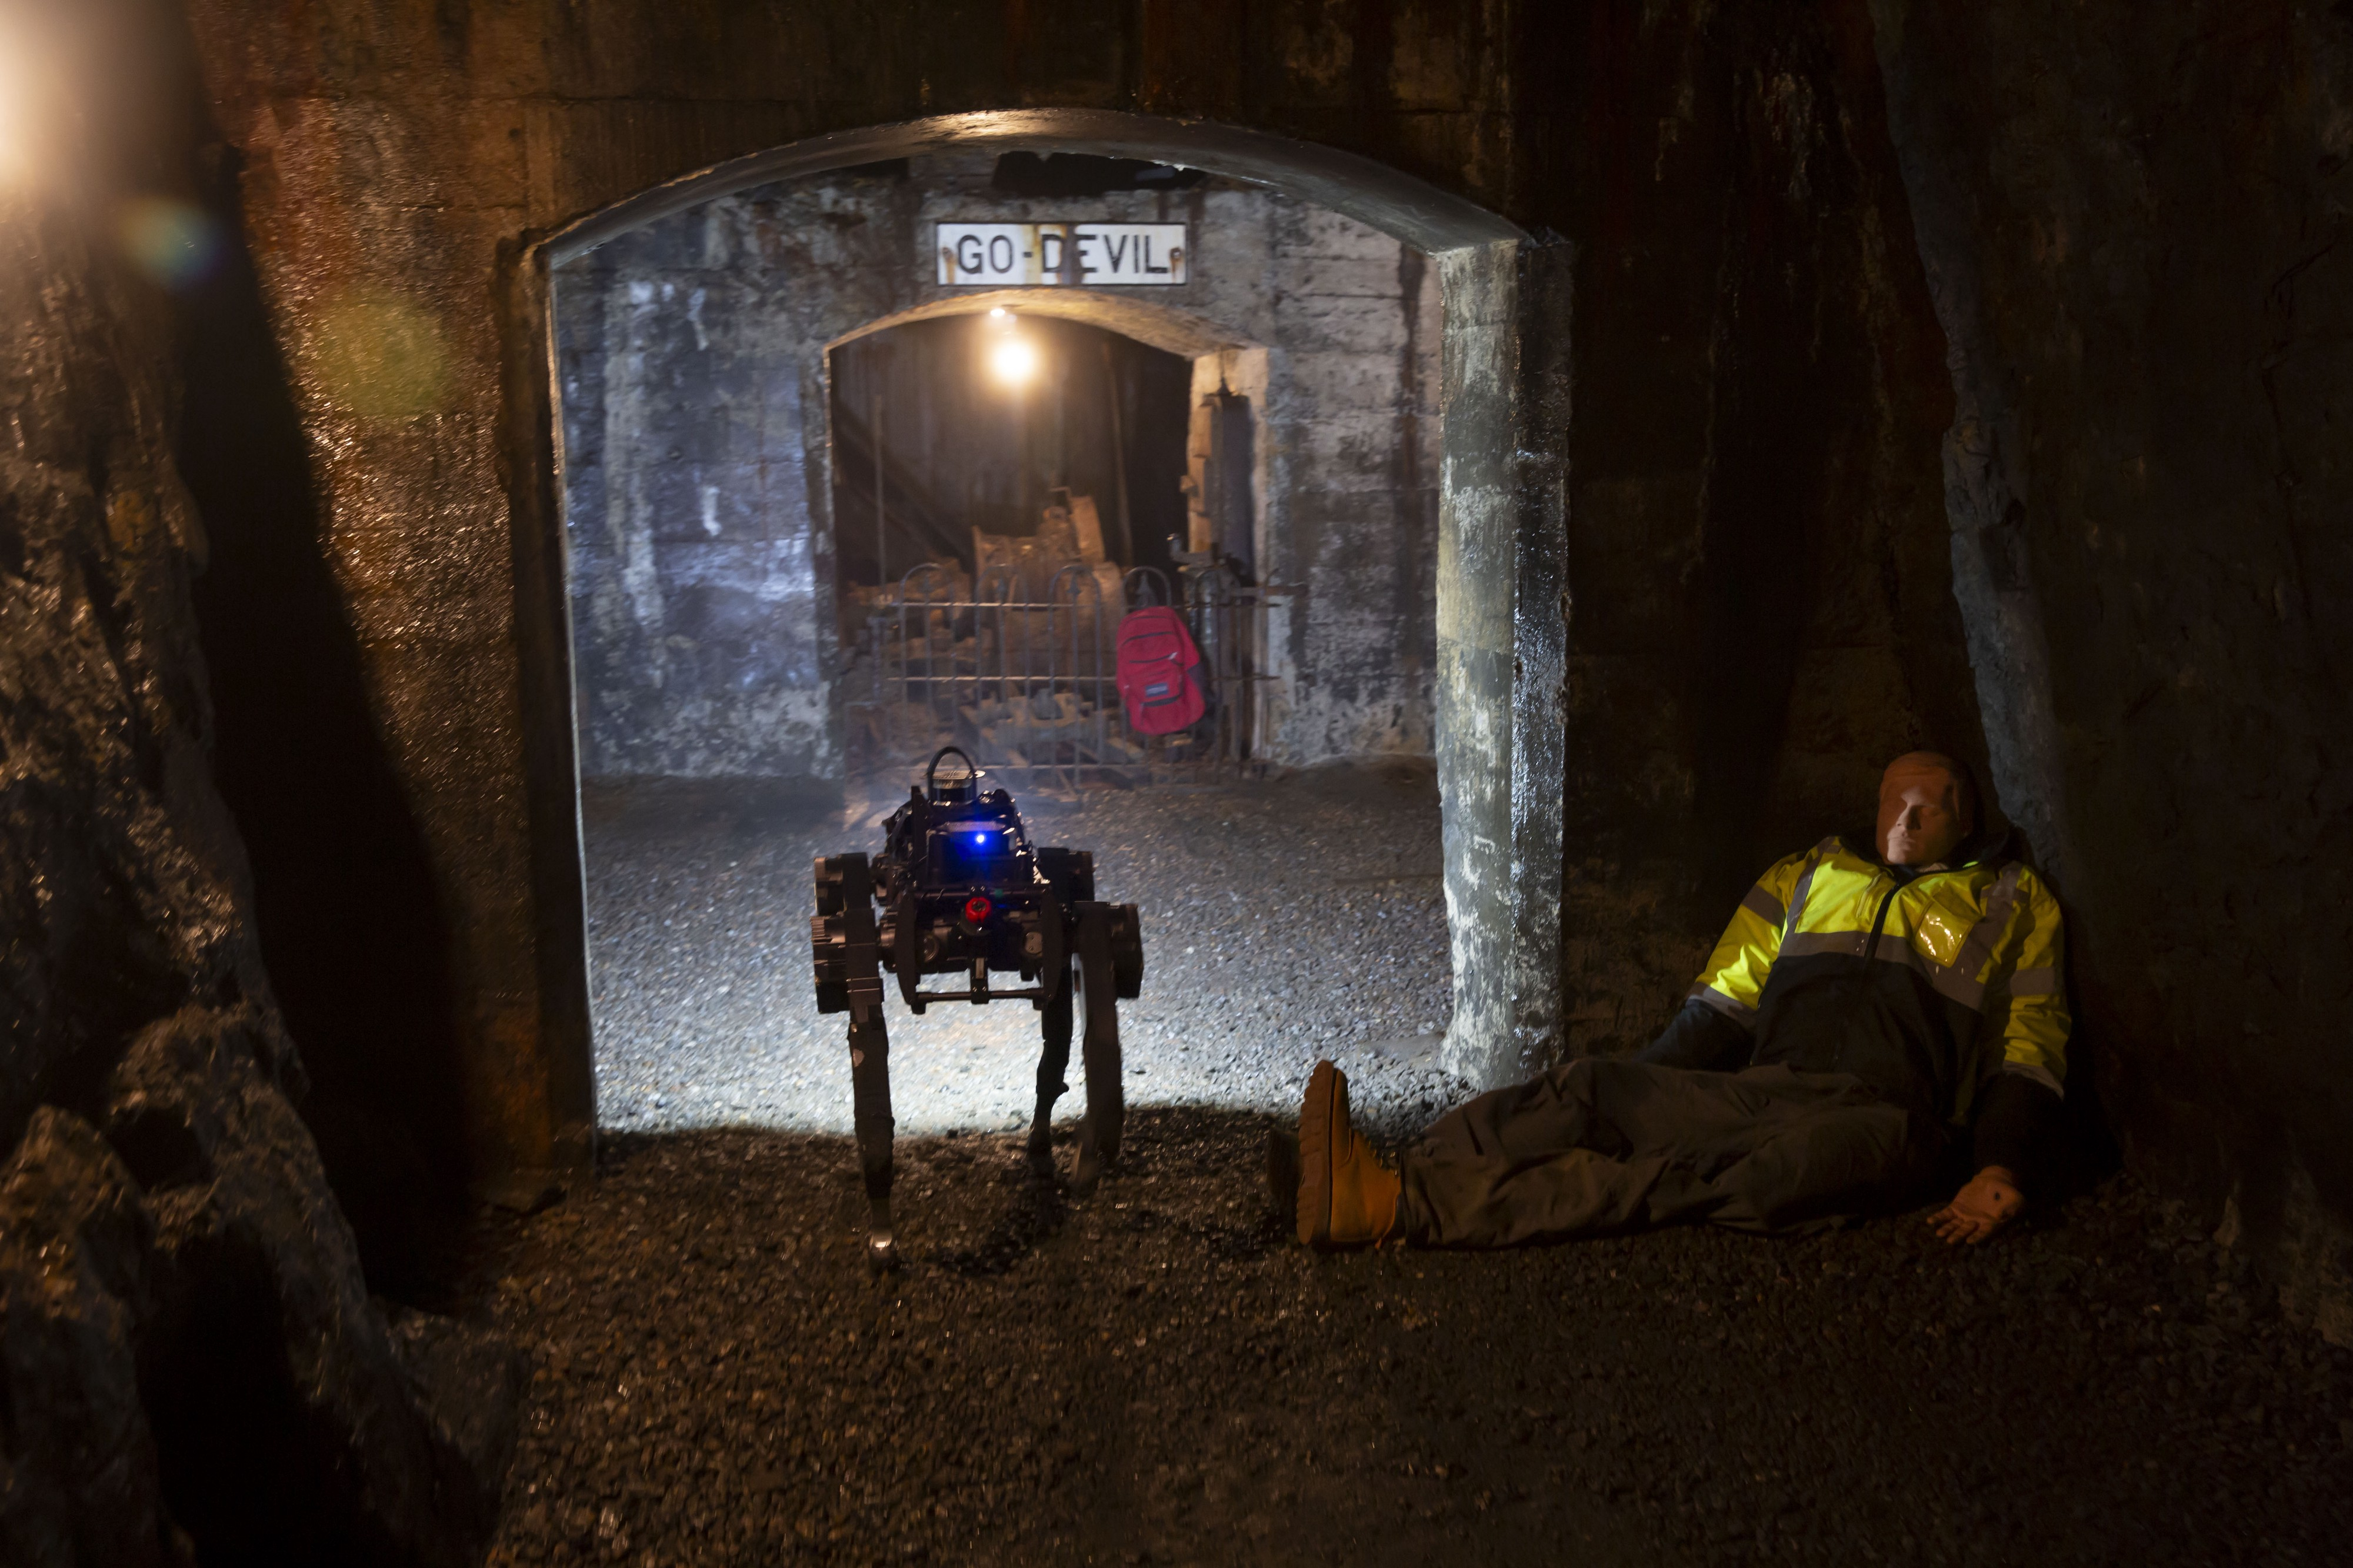 In a dimly lit tunnel, a dog-like legged robot walks past a mannequin posing as a mine-worker in need of rescue.